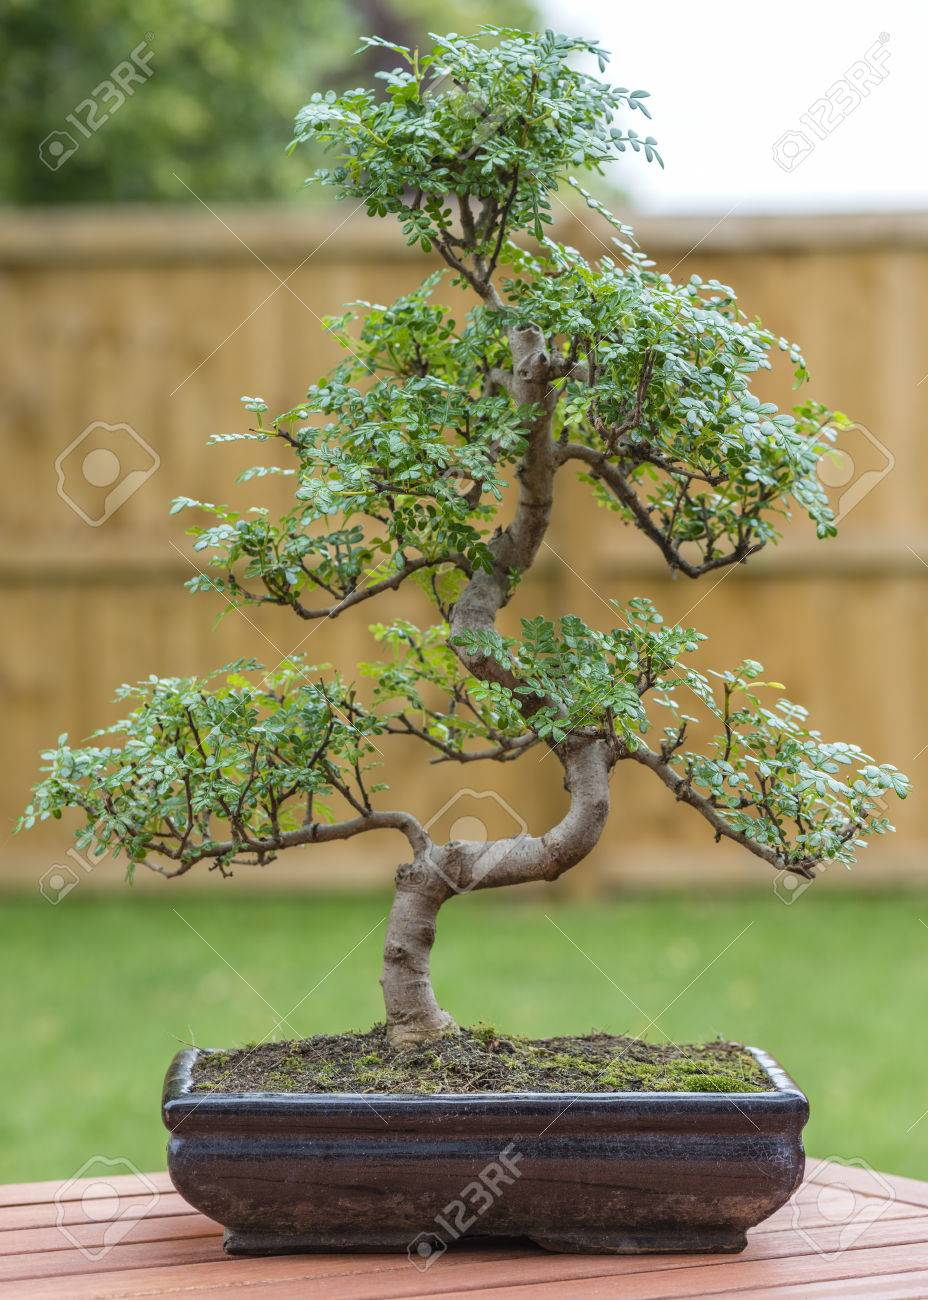 Bonsai Pepper Plant : bonsai, pepper, plant, Bonsai, Pepper, Outdoors., Stock, Photo,, Picture, Royalty, Image., Image, 49876849.